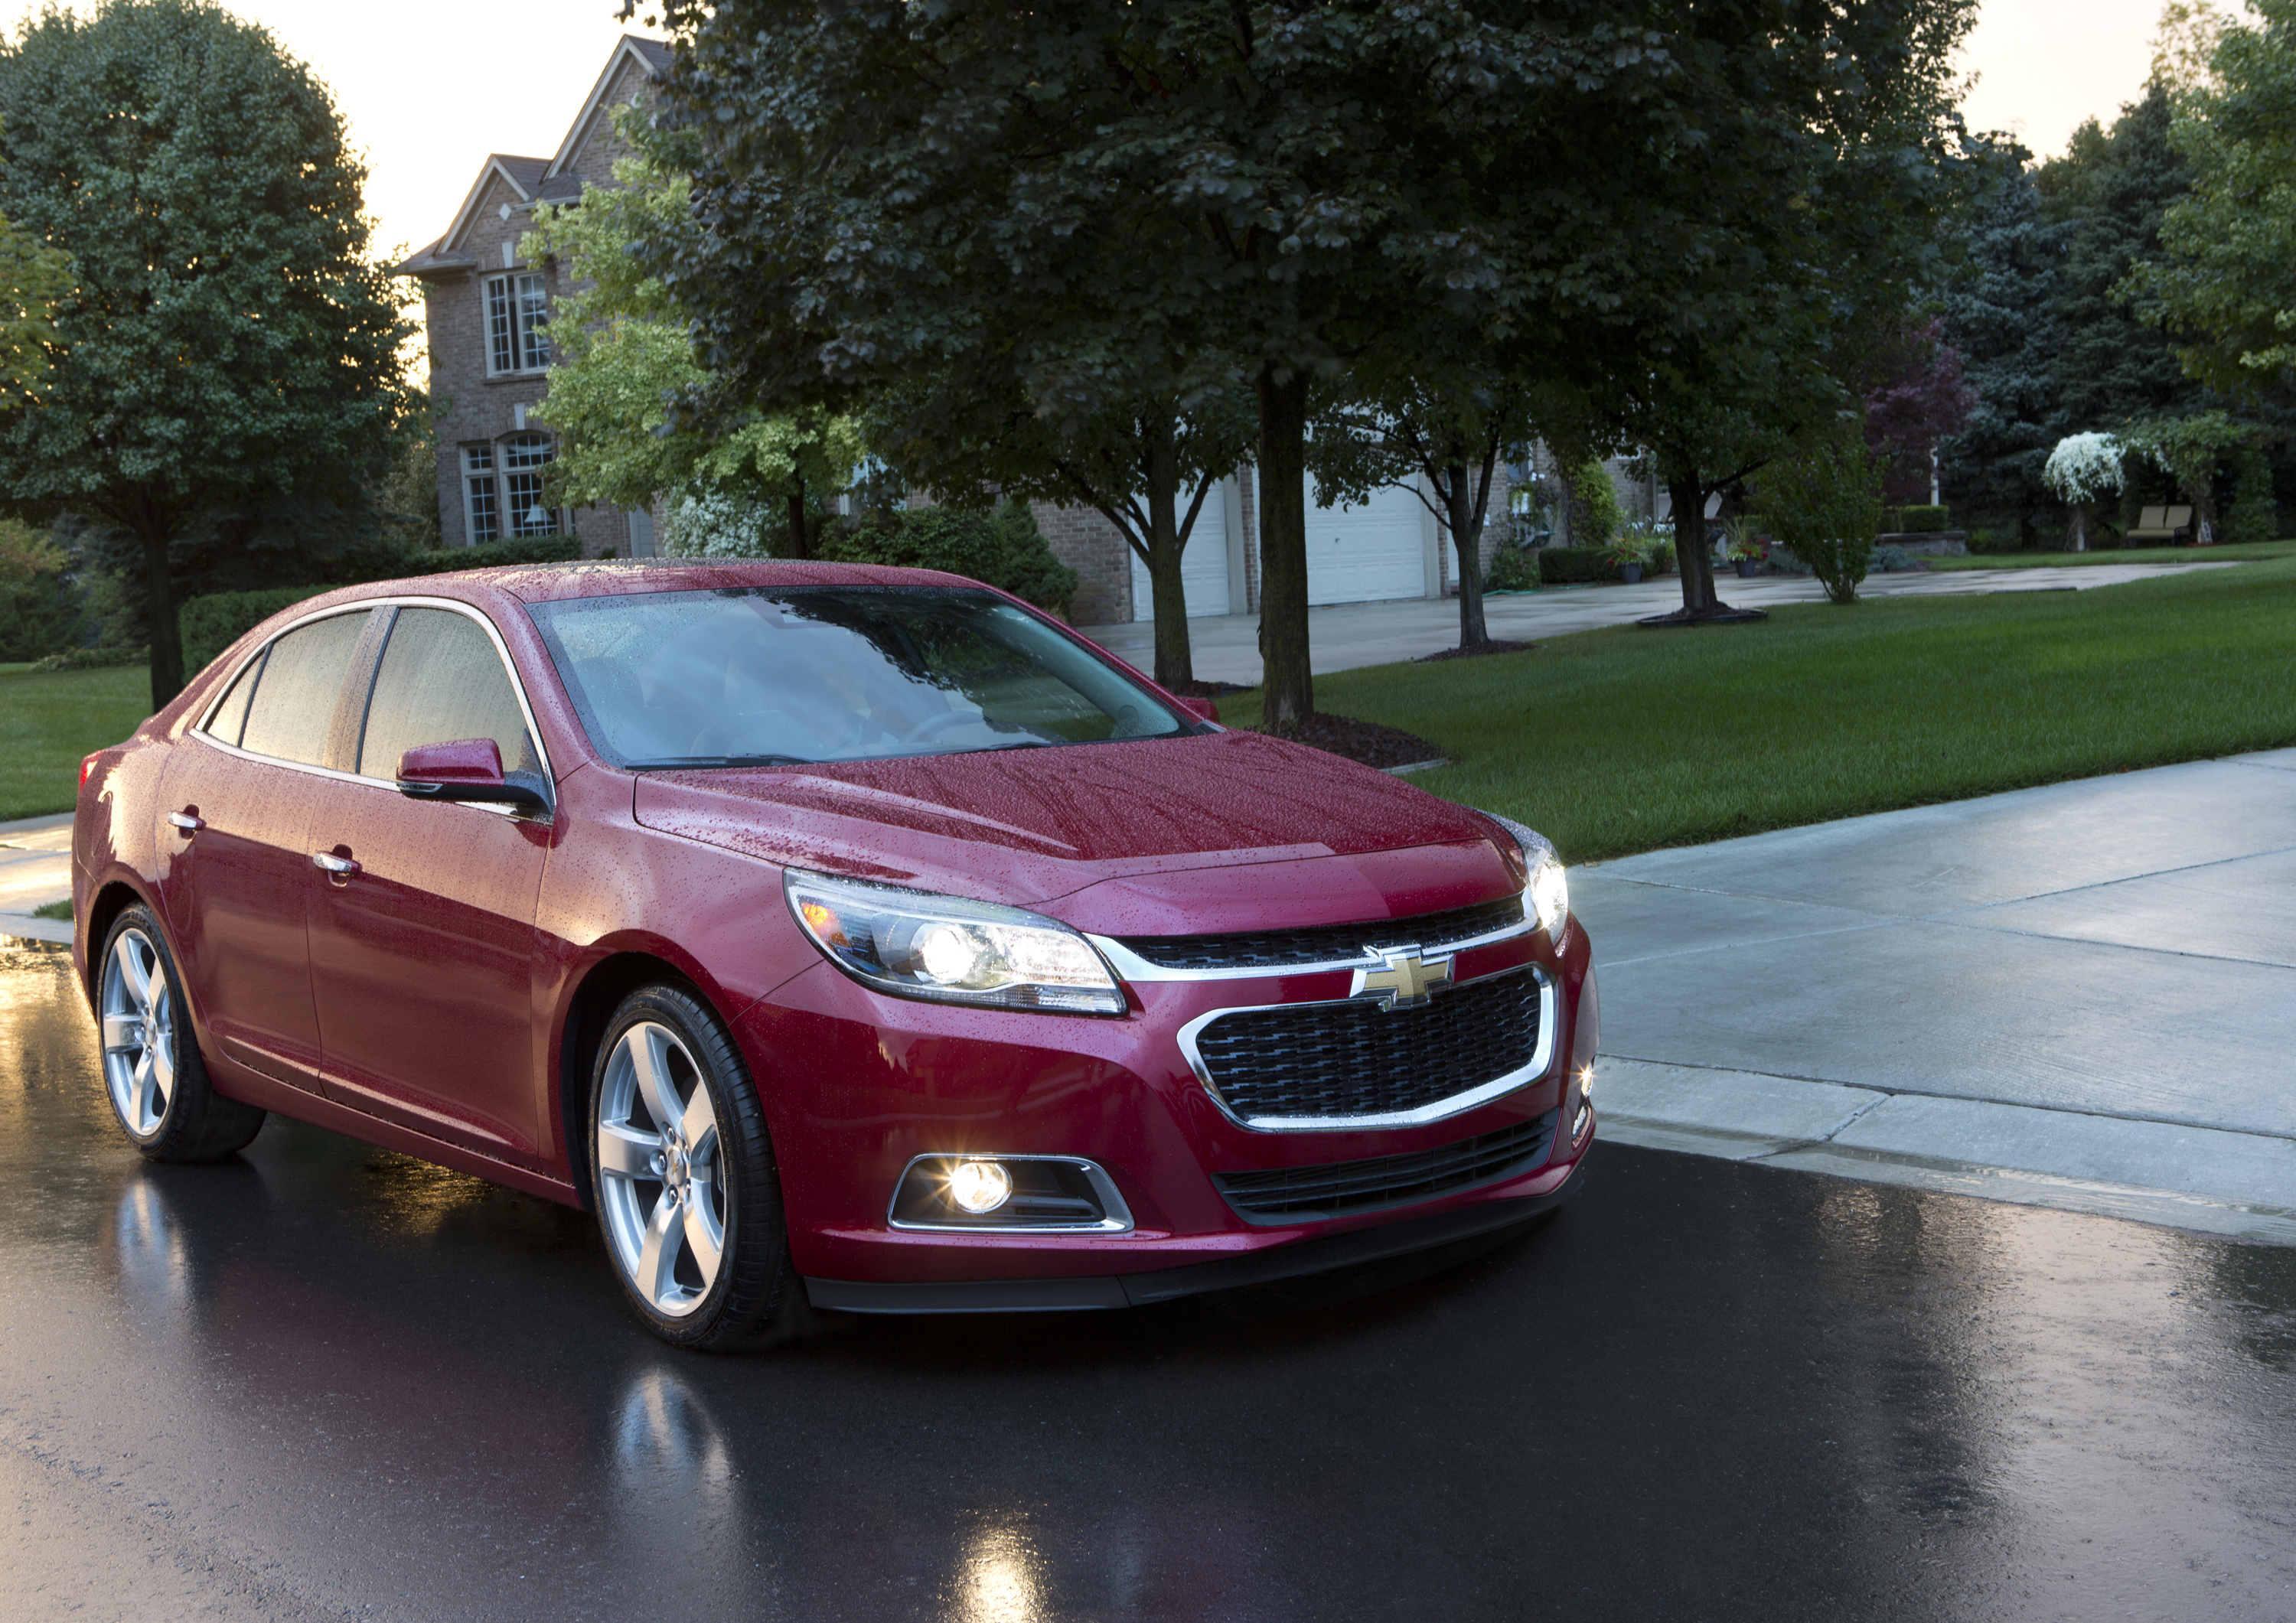 2014 Chevrolet Malibu 010 gm announces five safety recalls  at alyssarenee.co